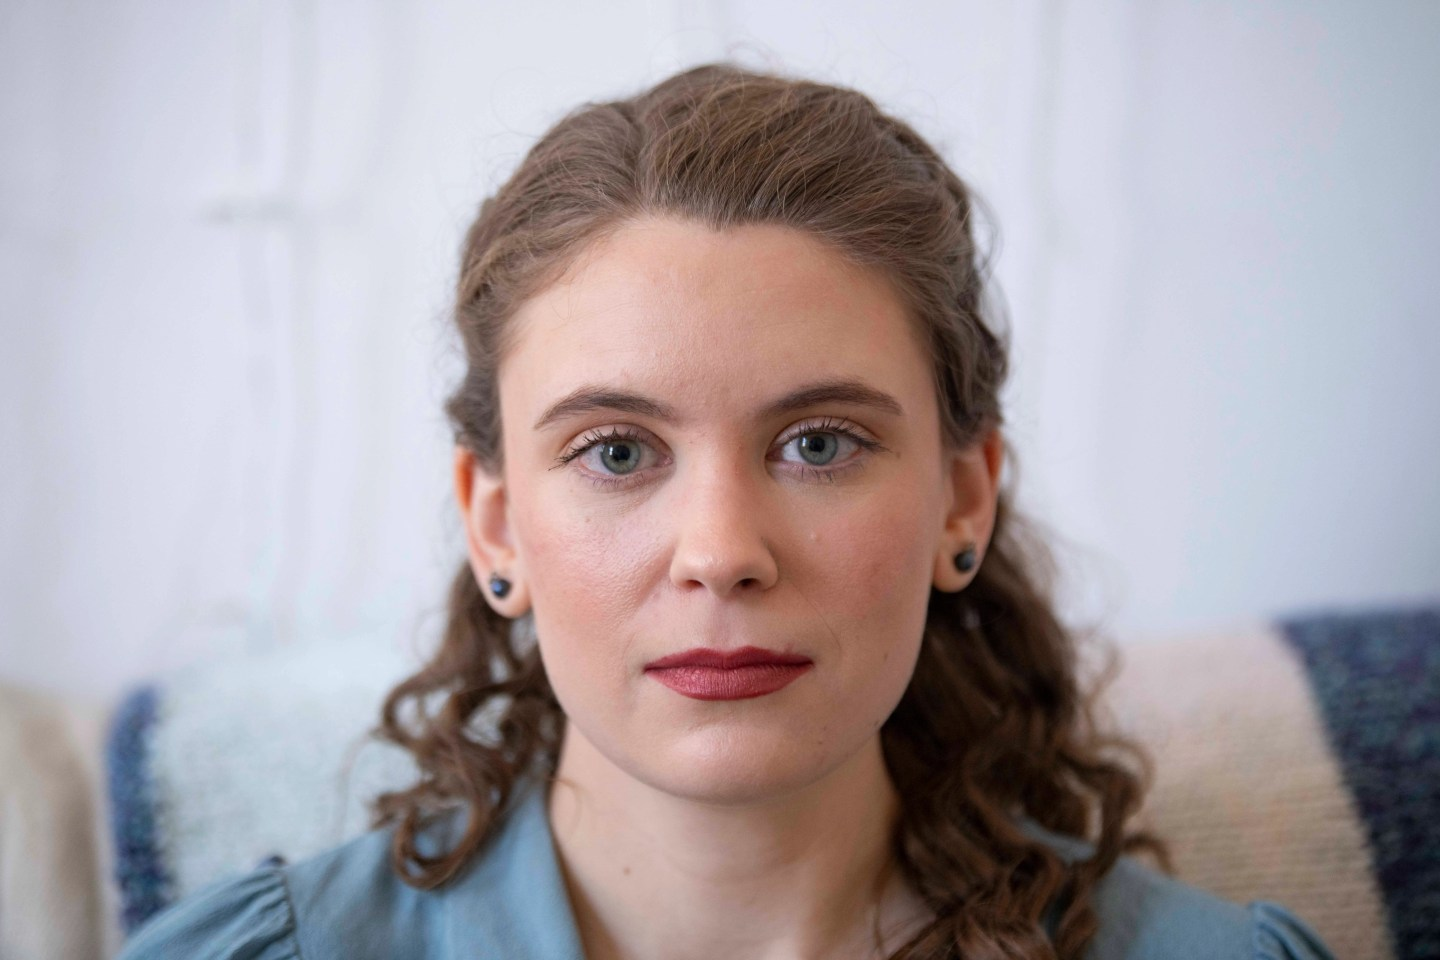 Emma Tremblay reported being sexually assaulted by a doctor while serving in Ecuador in 2018. She said soon after the incident she learned Peace Corps staff had previously been warned about the doctor's inappropriate behavior toward another volunteer.